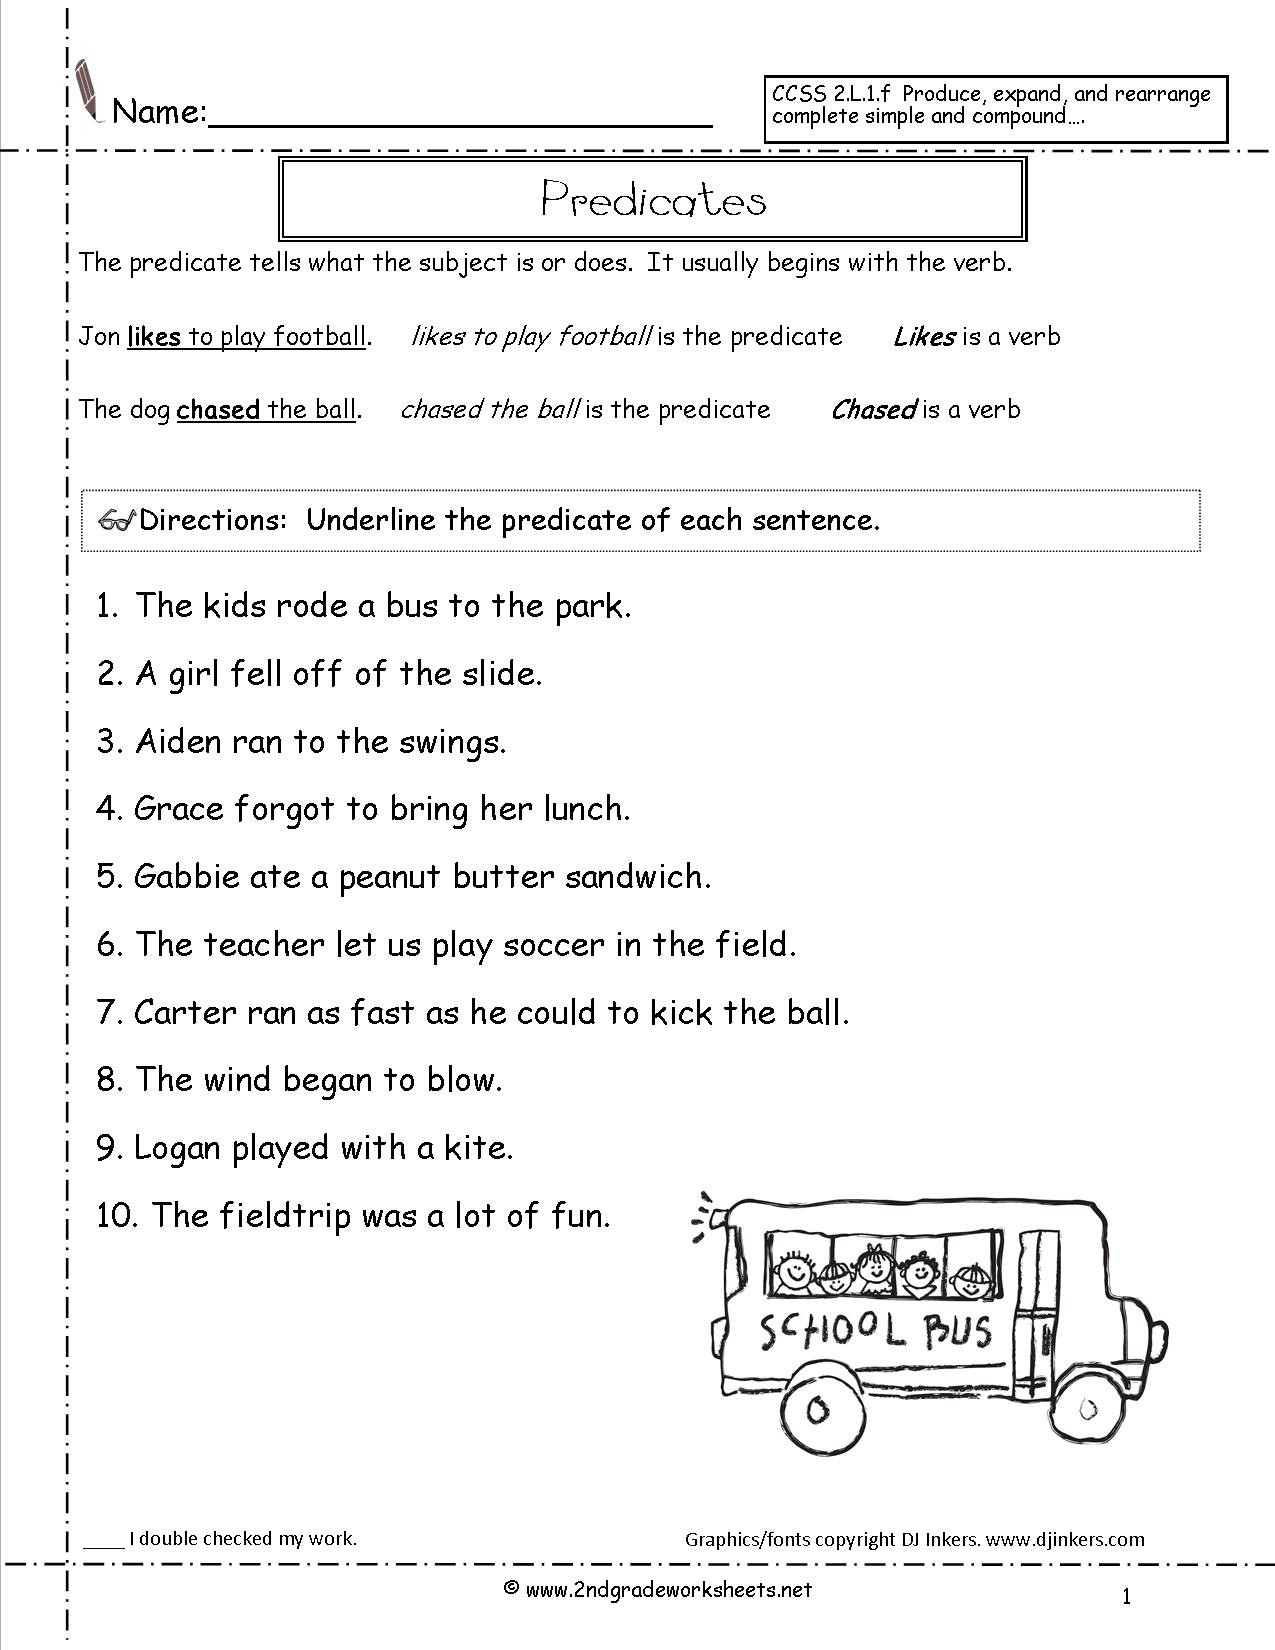 Paragraph Editing Worksheets 4th Grade Editing Sentences Worksheet